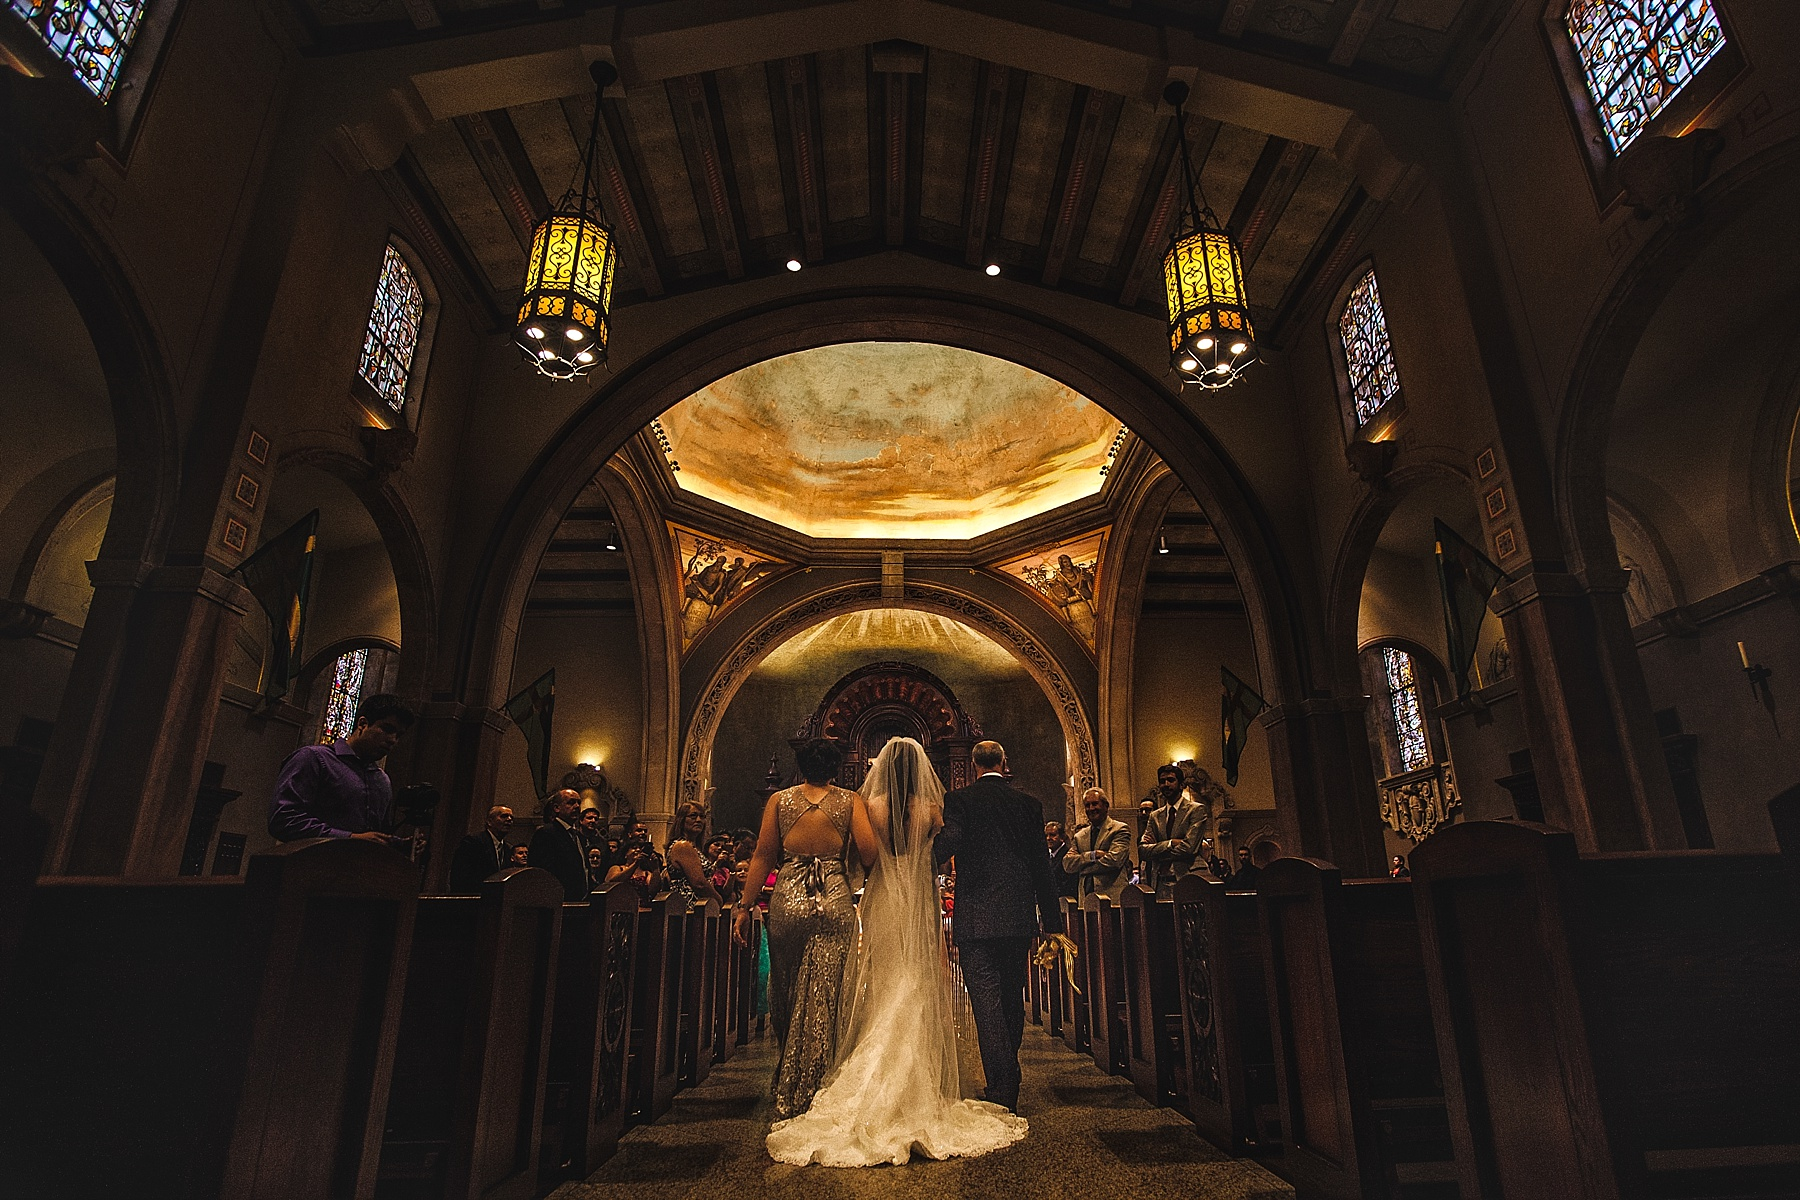 St Charles Borromeo in North Hollywood is one of the most picturesque cathedrals in Los Angeles to have a wedding